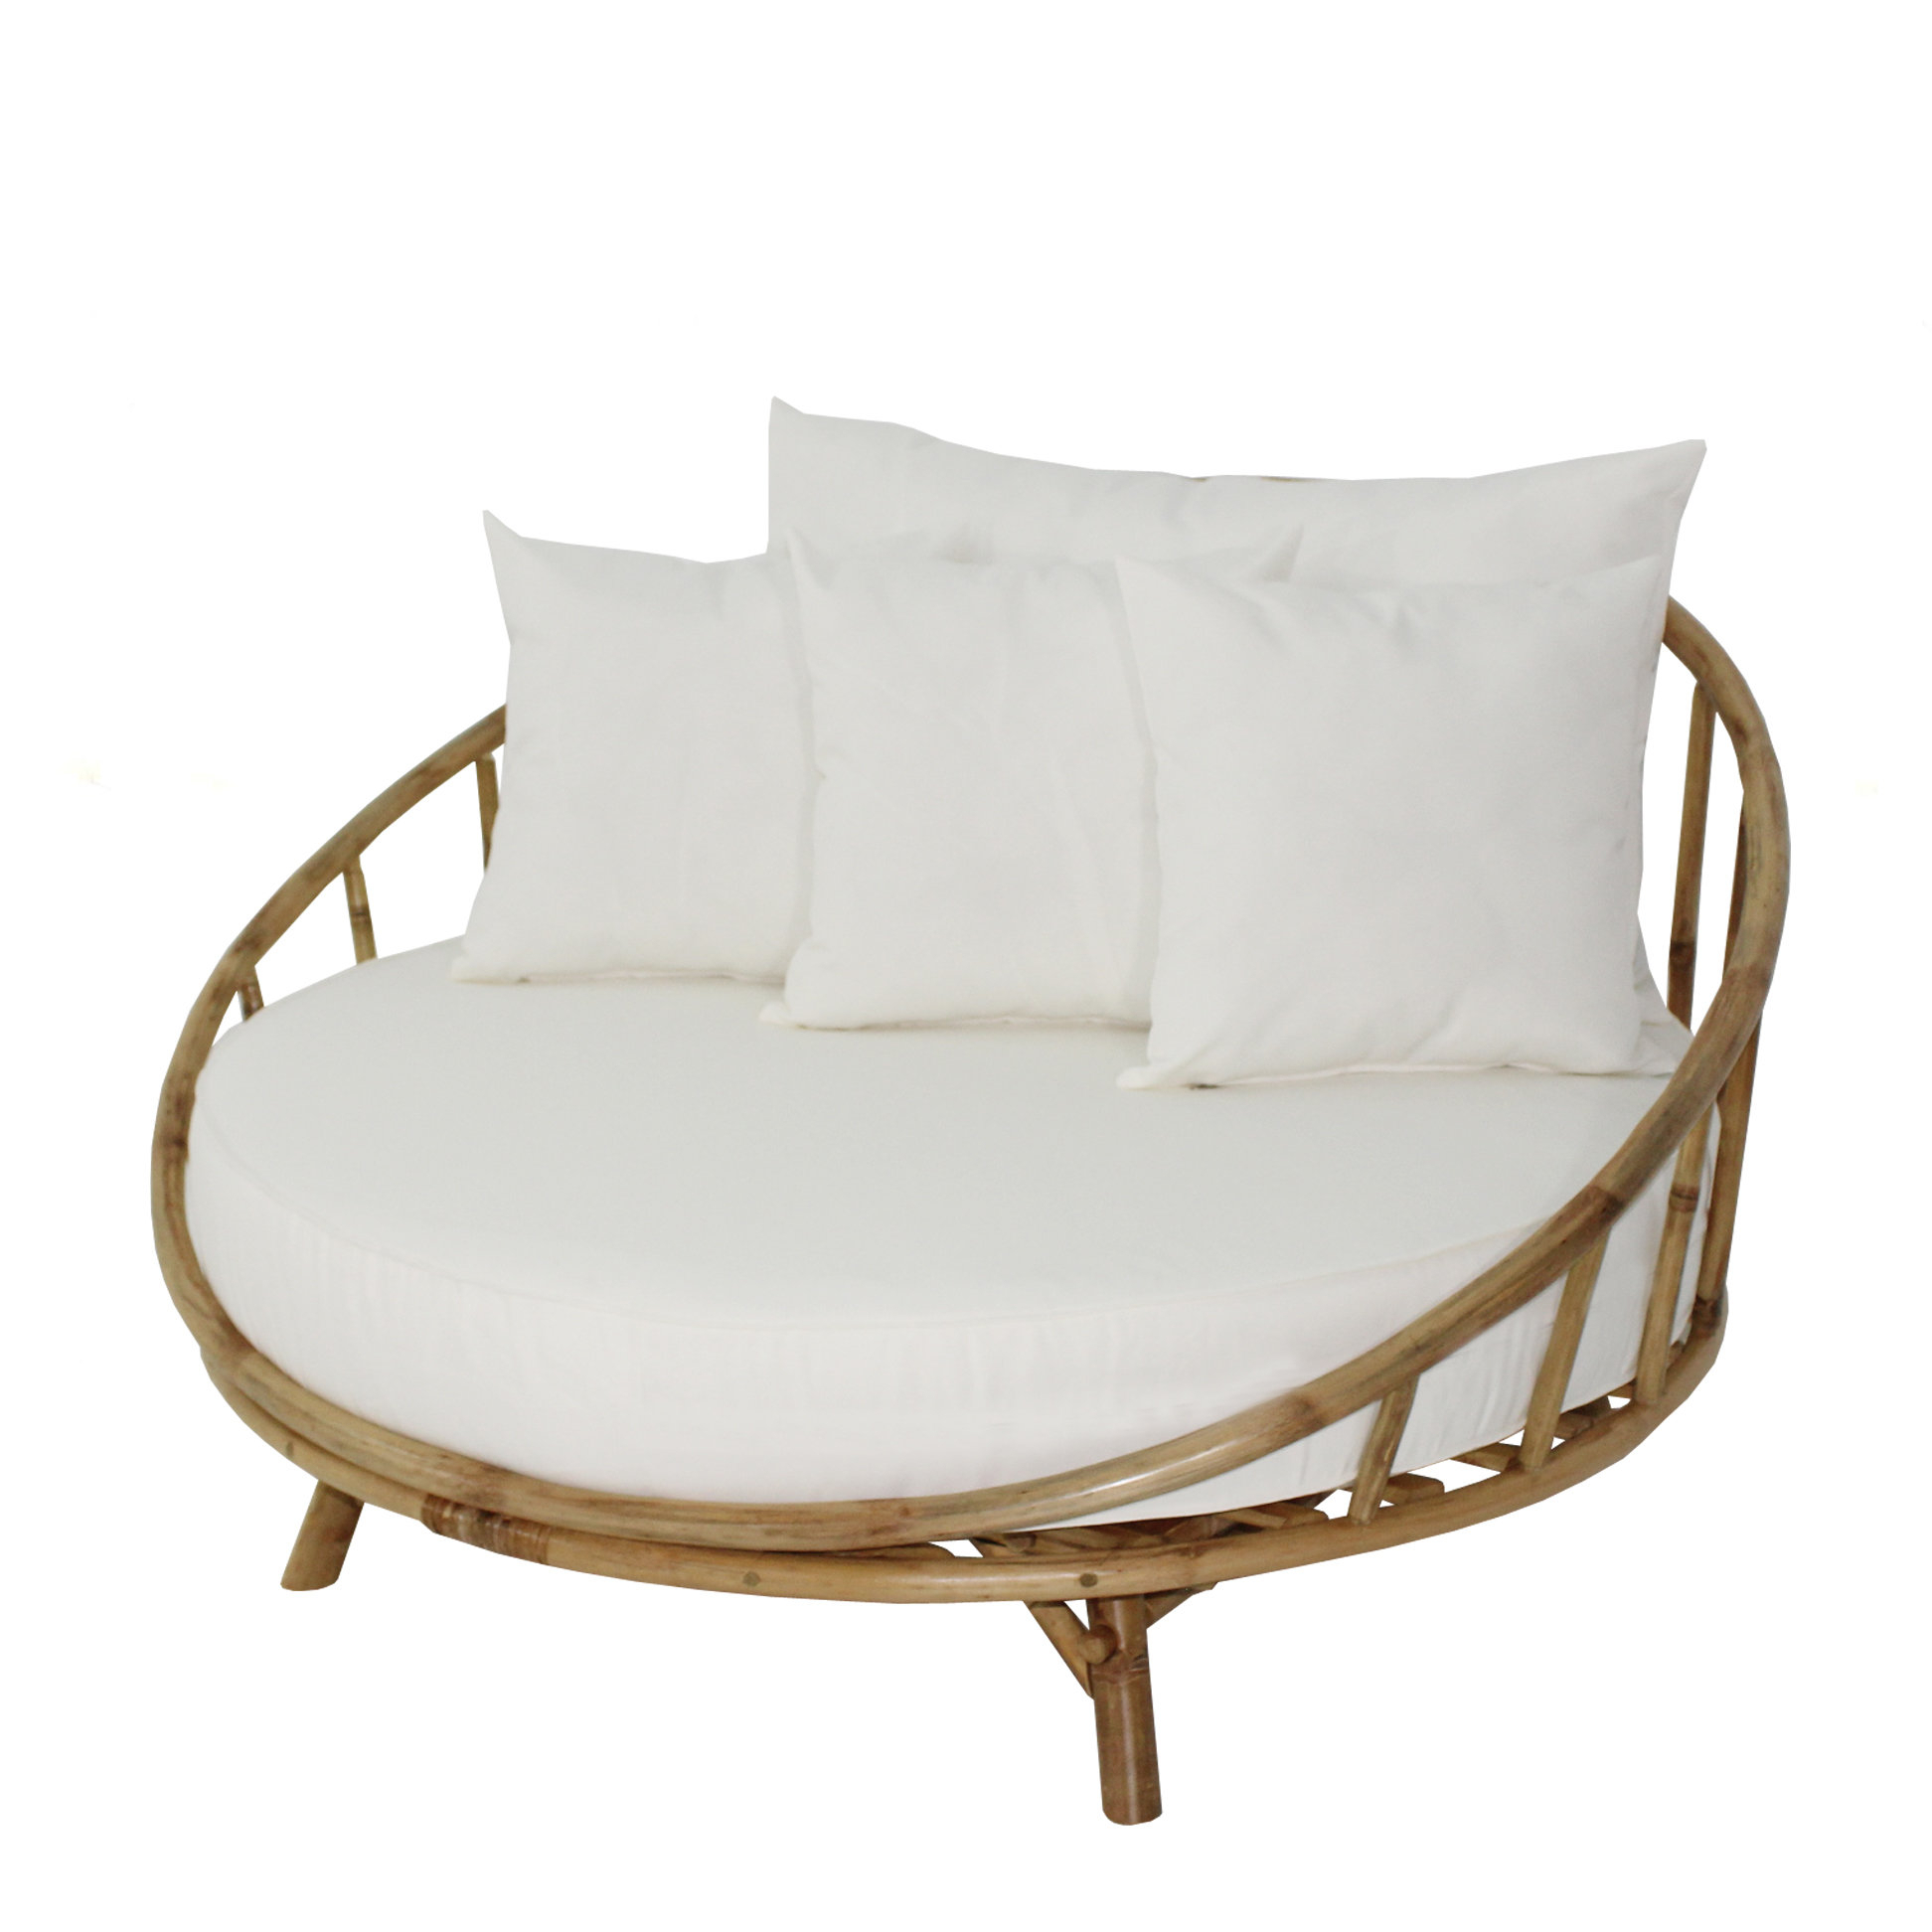 Olu Bamboo Large Round Patio Daybeds With Cushions Throughout Famous Olu Bamboo Large Round Patio Daybed With Cushions (View 13 of 20)